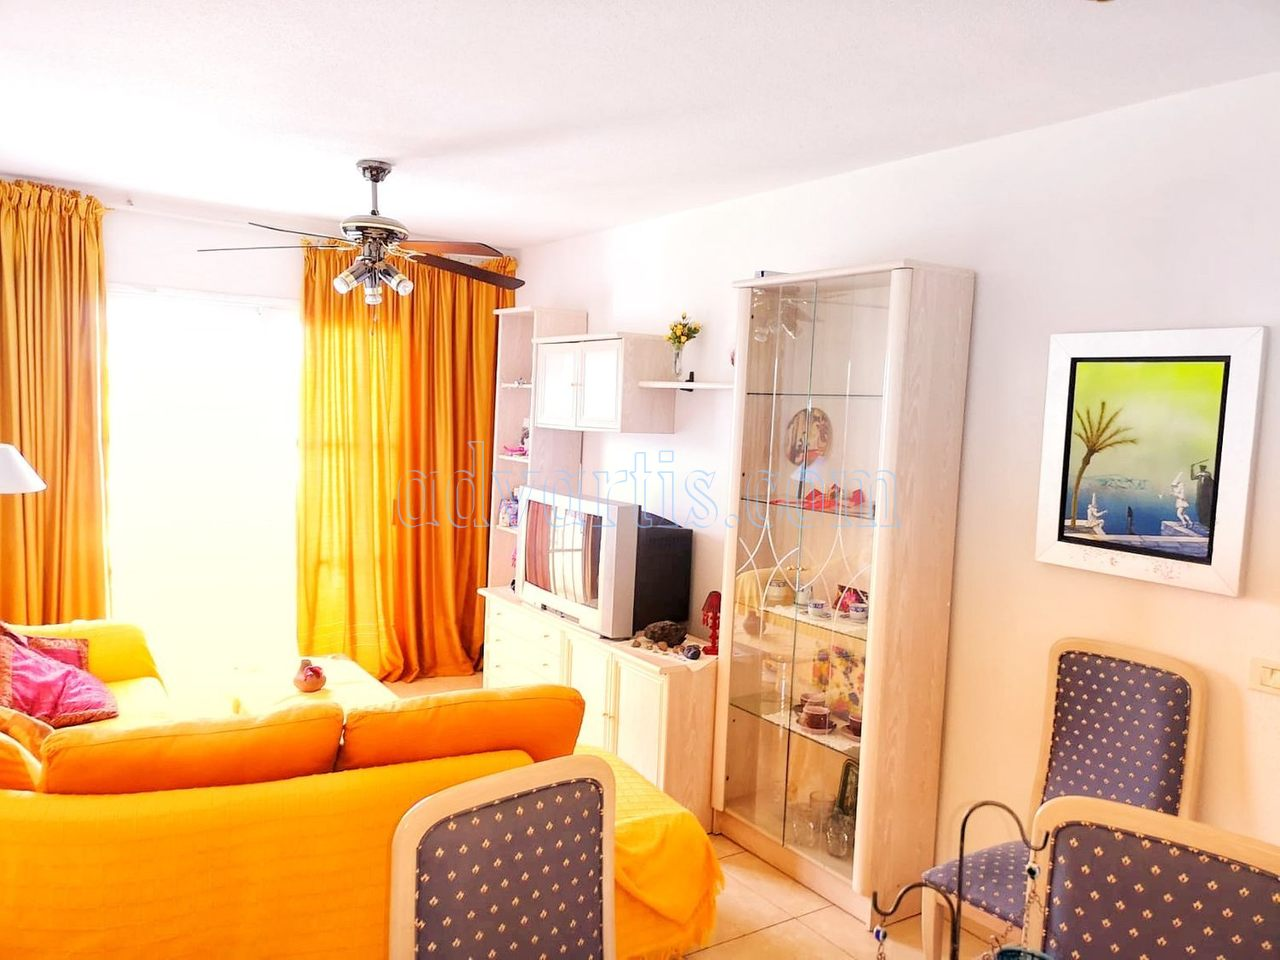 2 bedroom apartment for sale in Adeje Tenerife €159.000